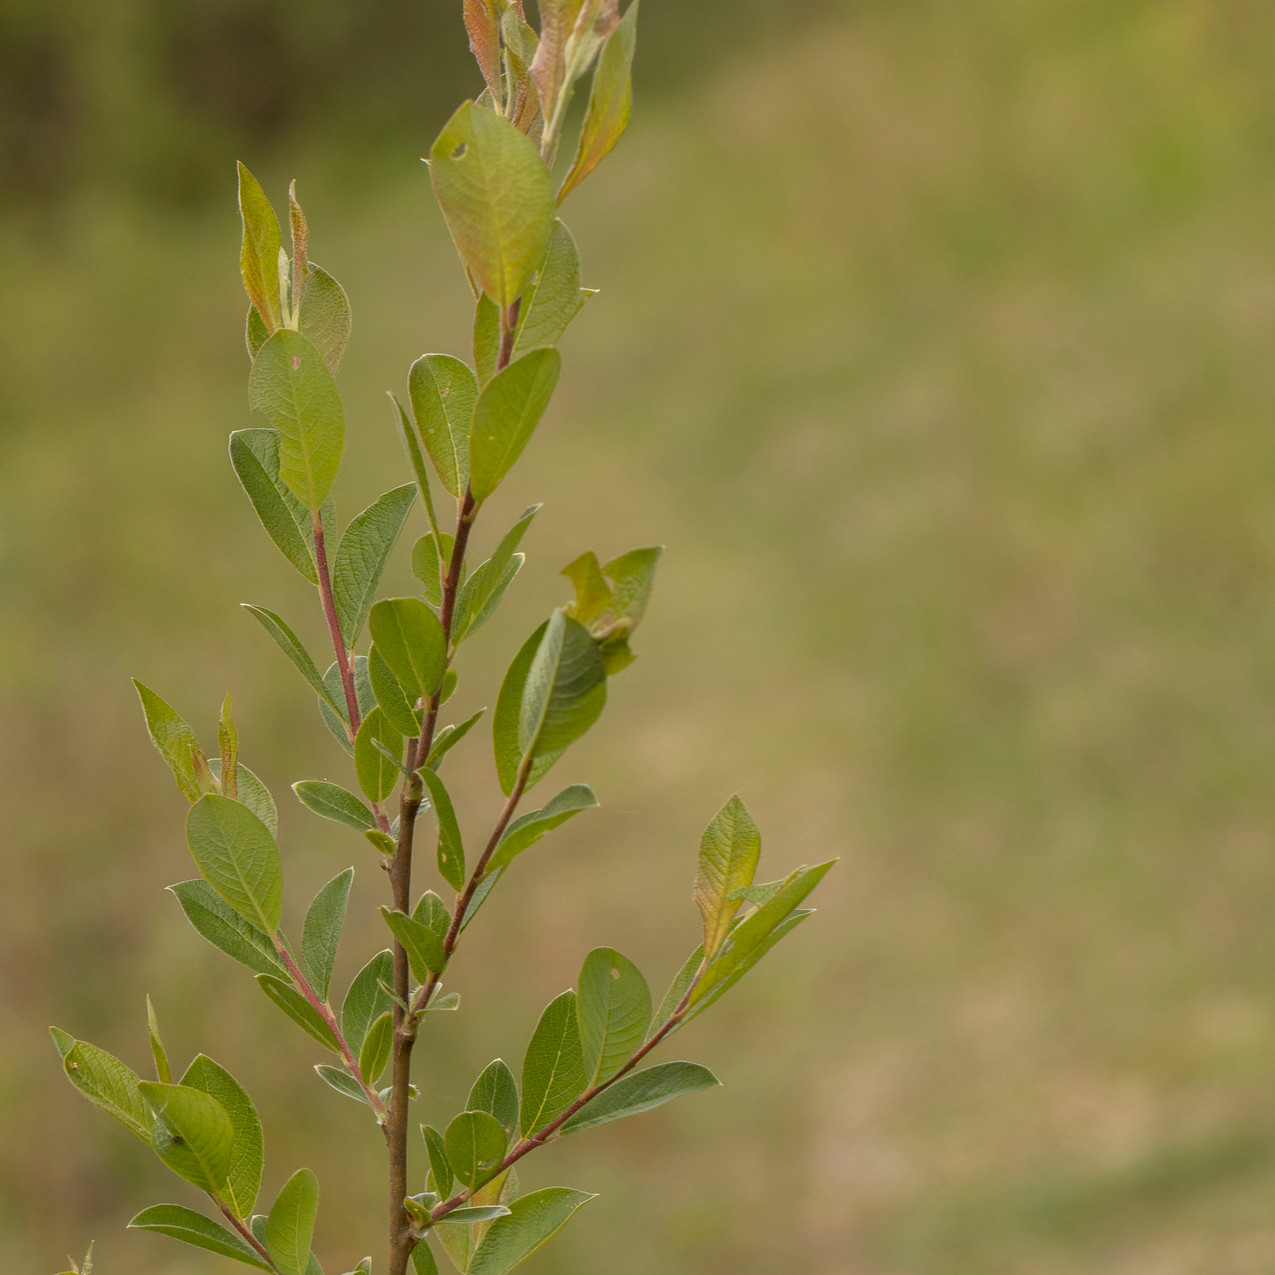 13th May 2020 _Bay-leaved Willow _Snakeh